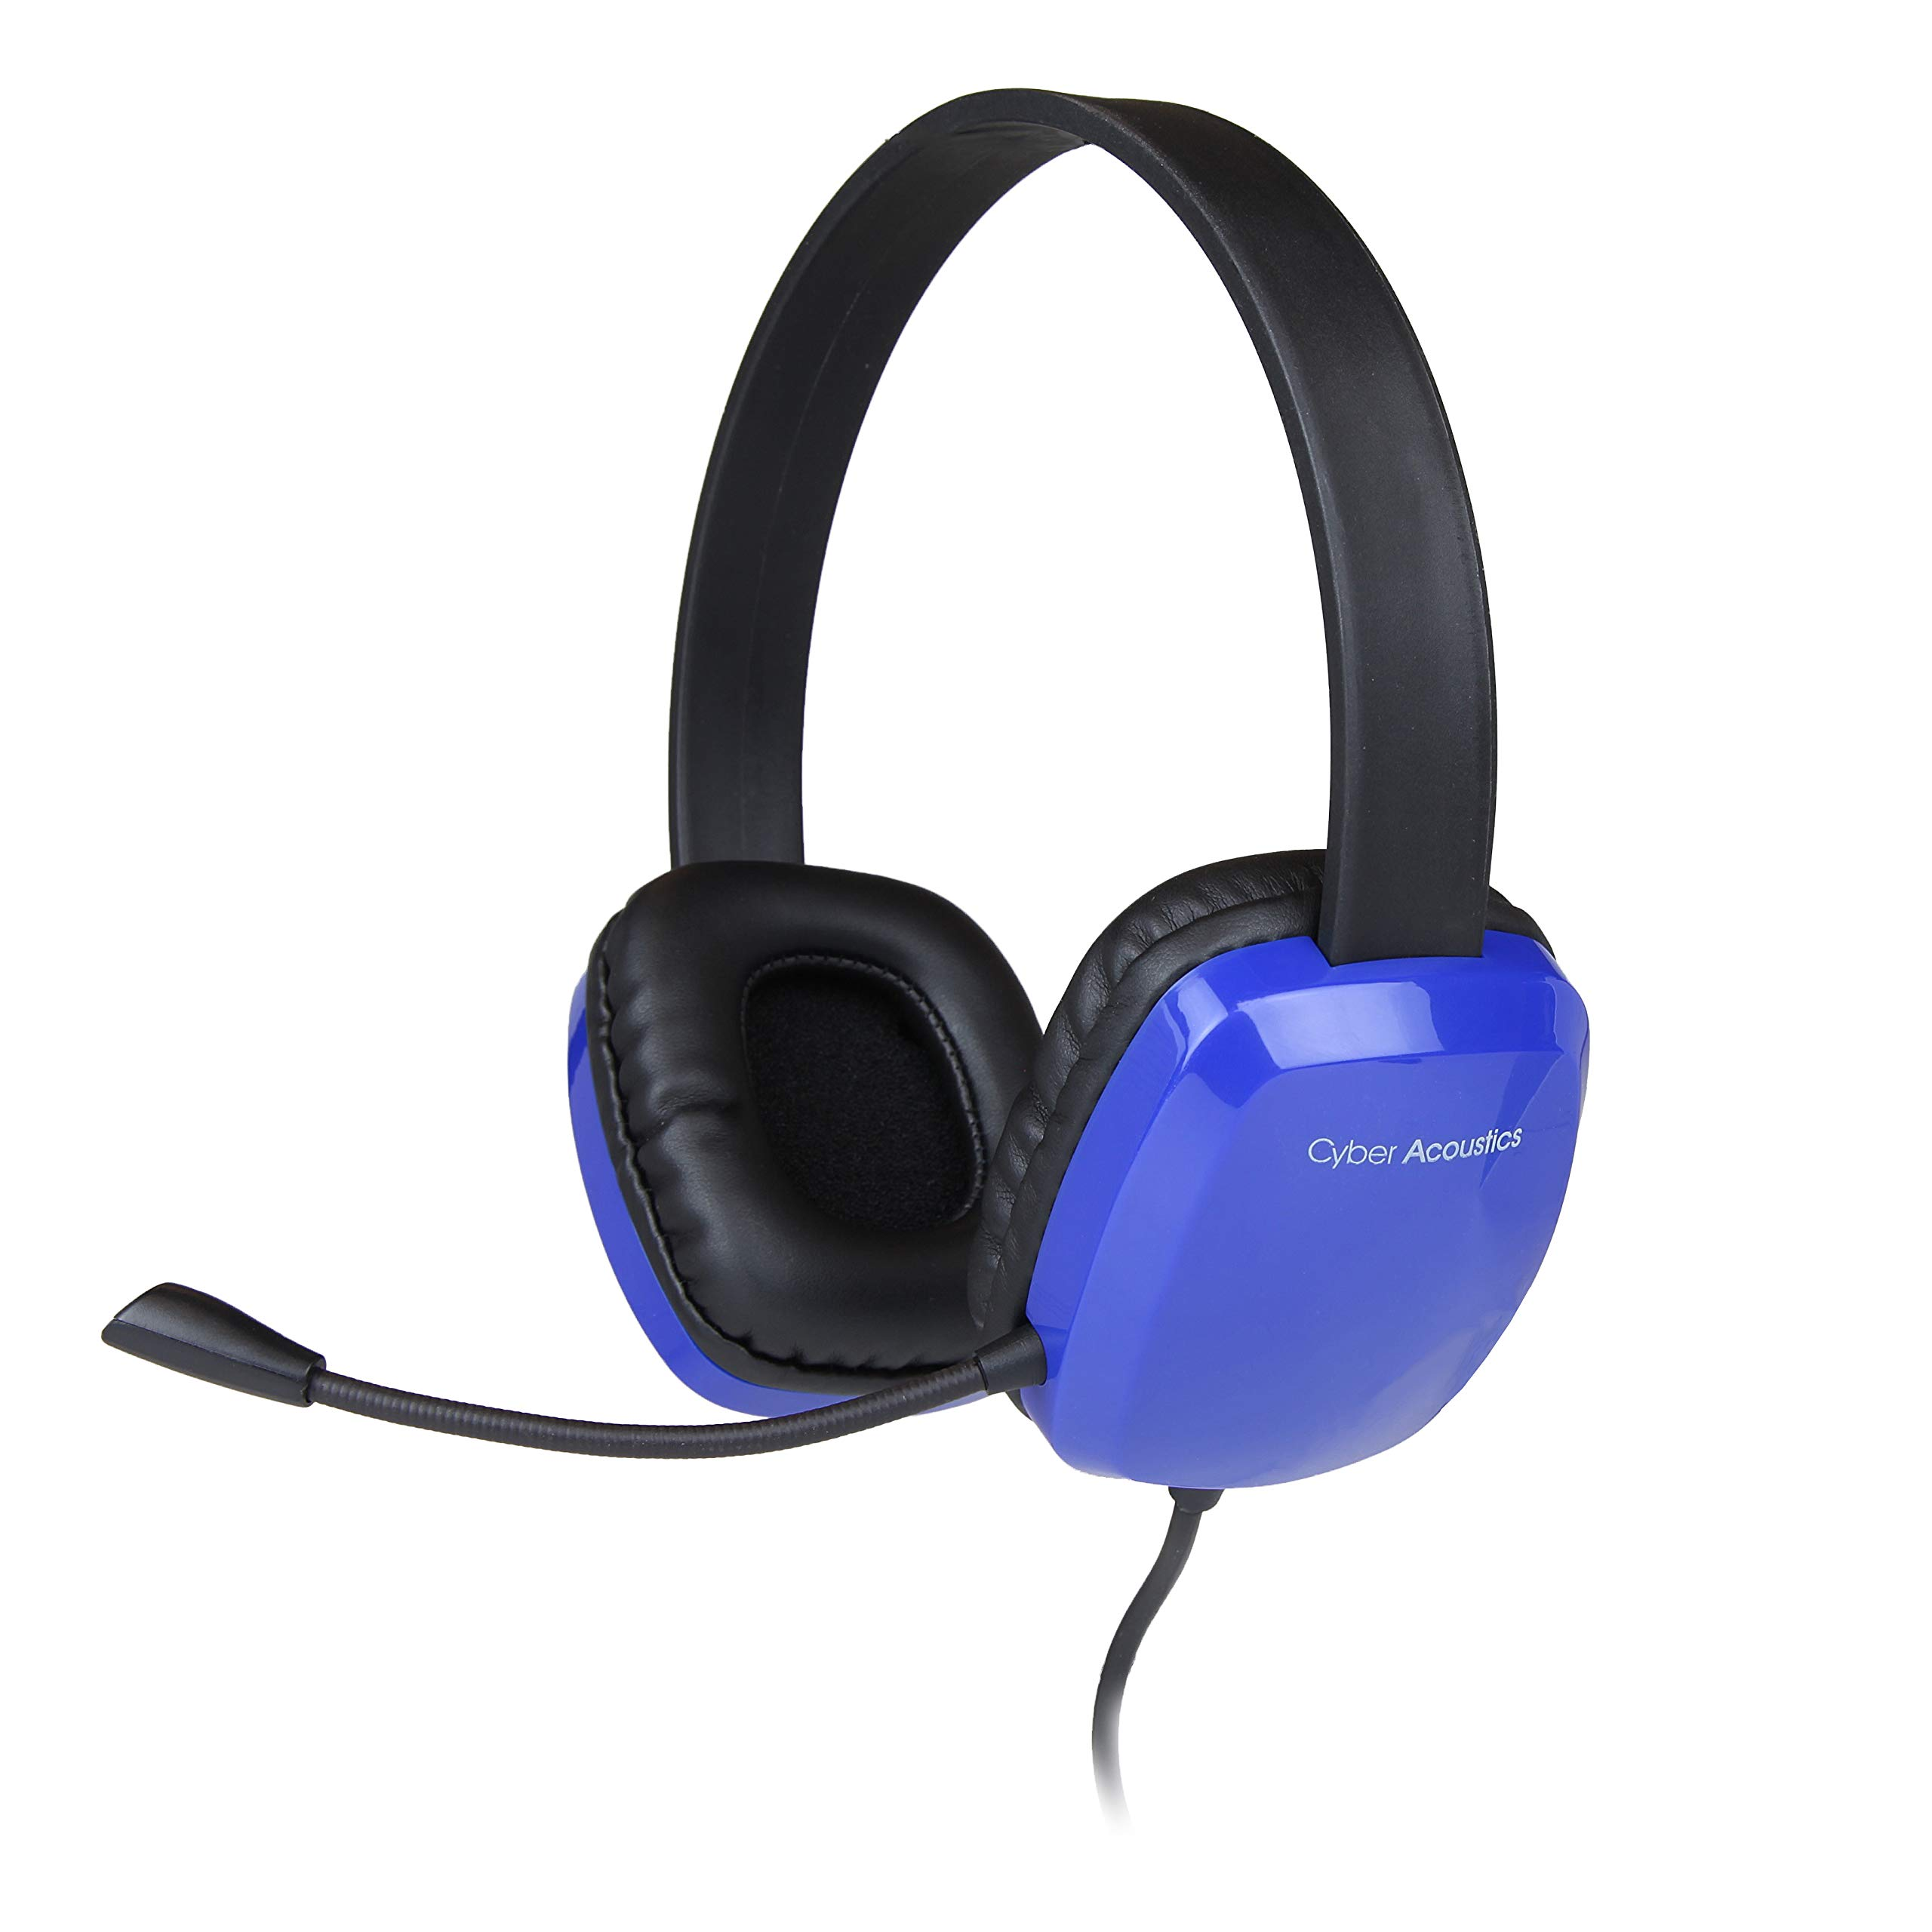 CYBER ACOUSTICS - Stereo Headset with Noise-Canceling Microphone - Compatible with PC's, Macs, Chromebooks, Tablets, Smartphones, iPods, MP3 Players, and Most Gaming Systems (AC-6008BL).